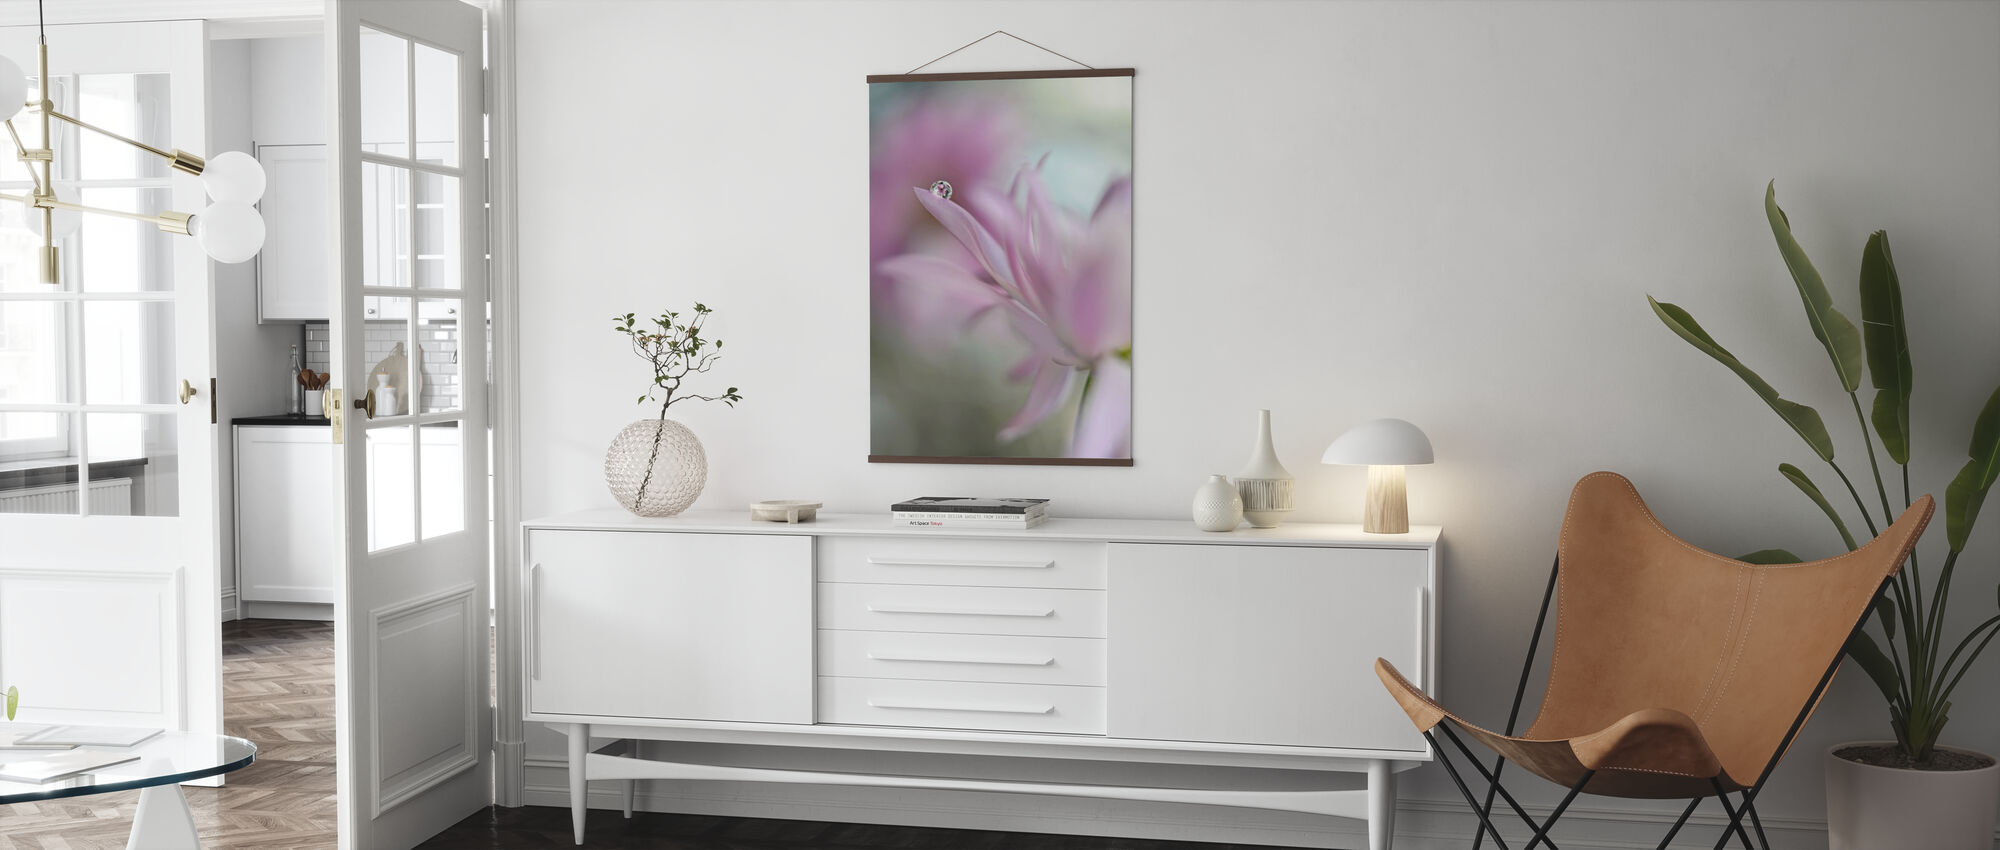 In Pink Delight - Poster - Living Room